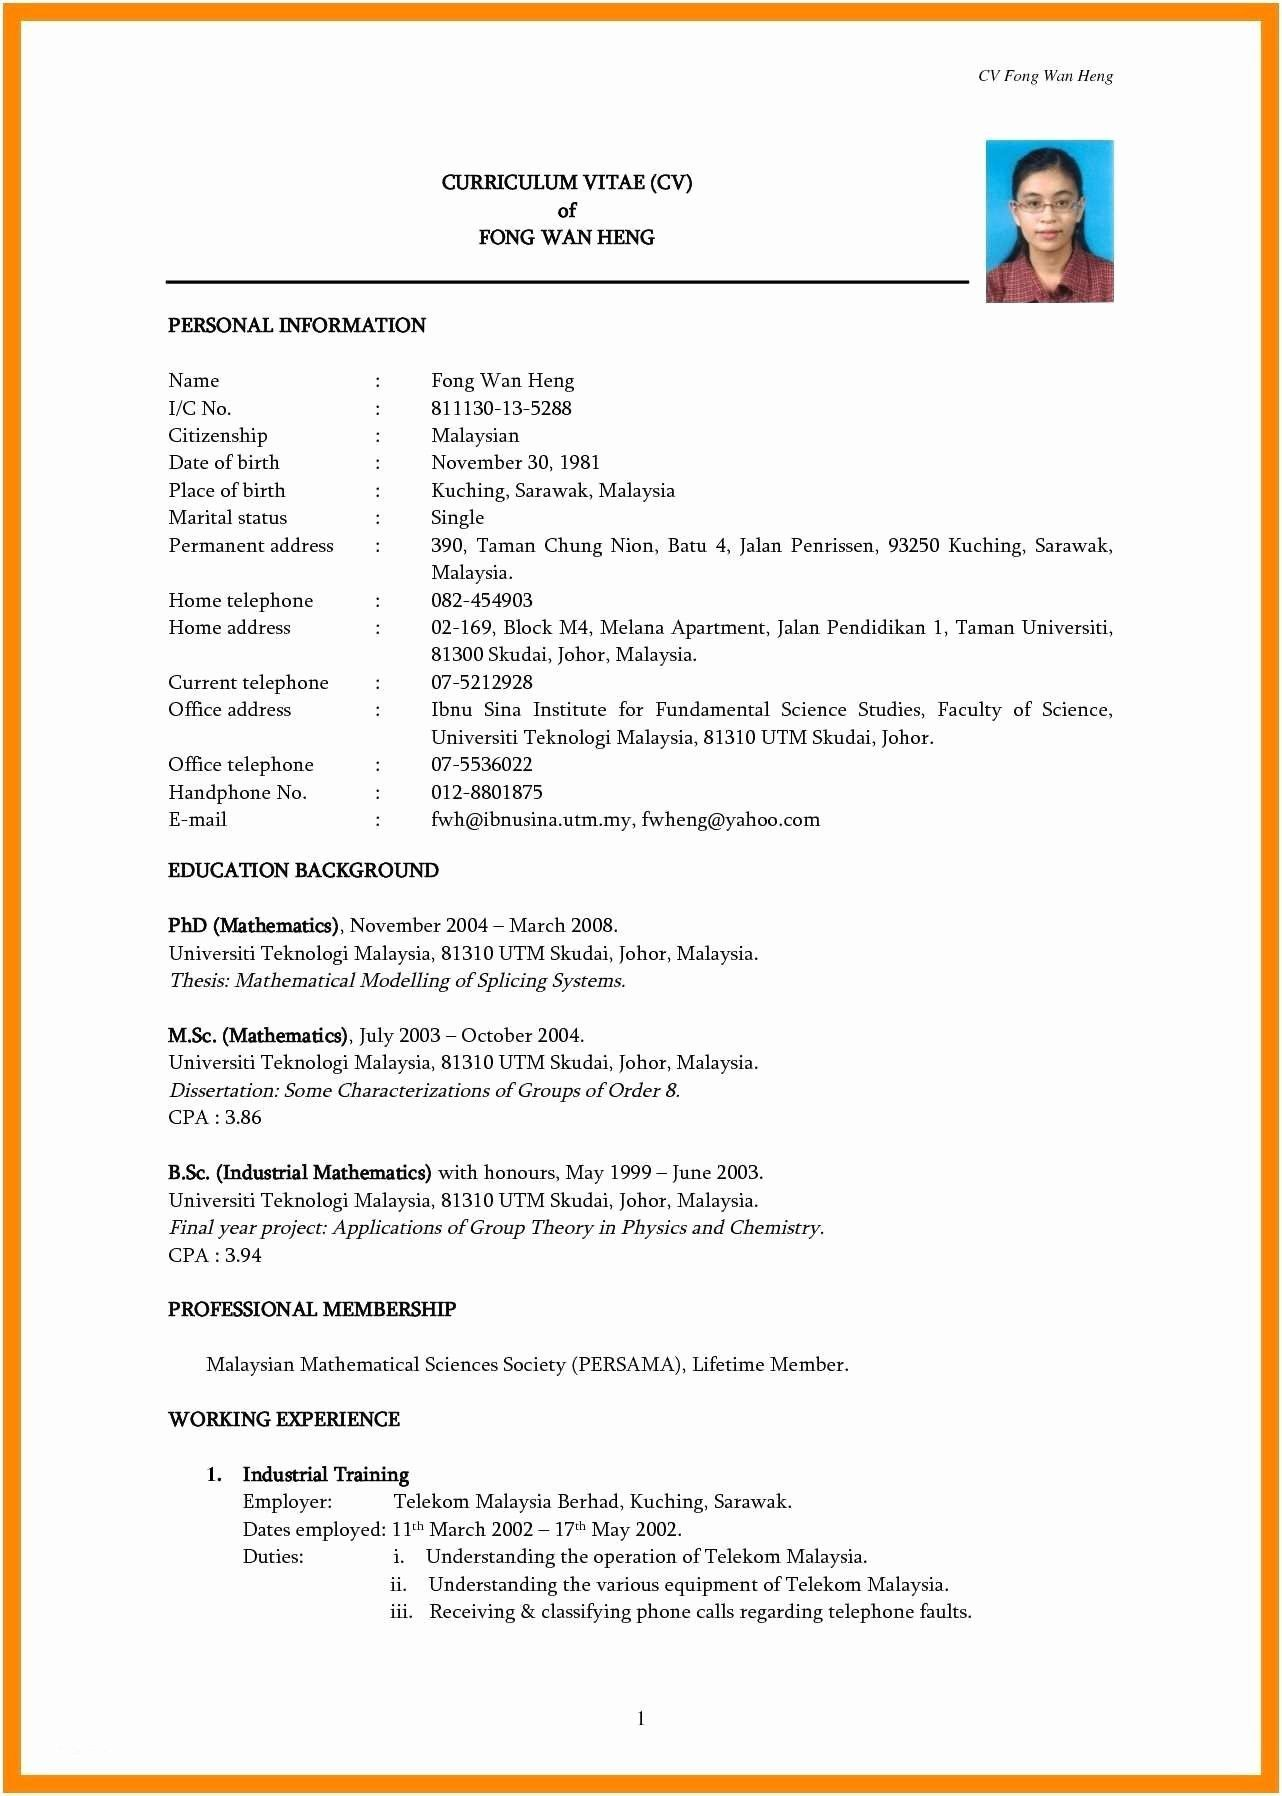 002 Formidable Free Resume Template 2015 Highest Quality Full